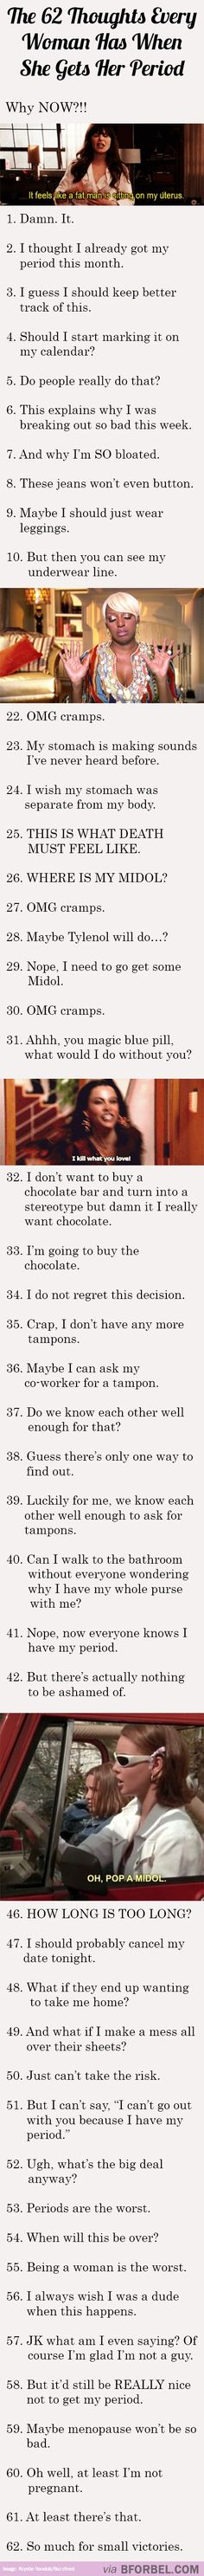 62 Thoughts Women Have When They're On Their Period…wow, this is so me sometimes...